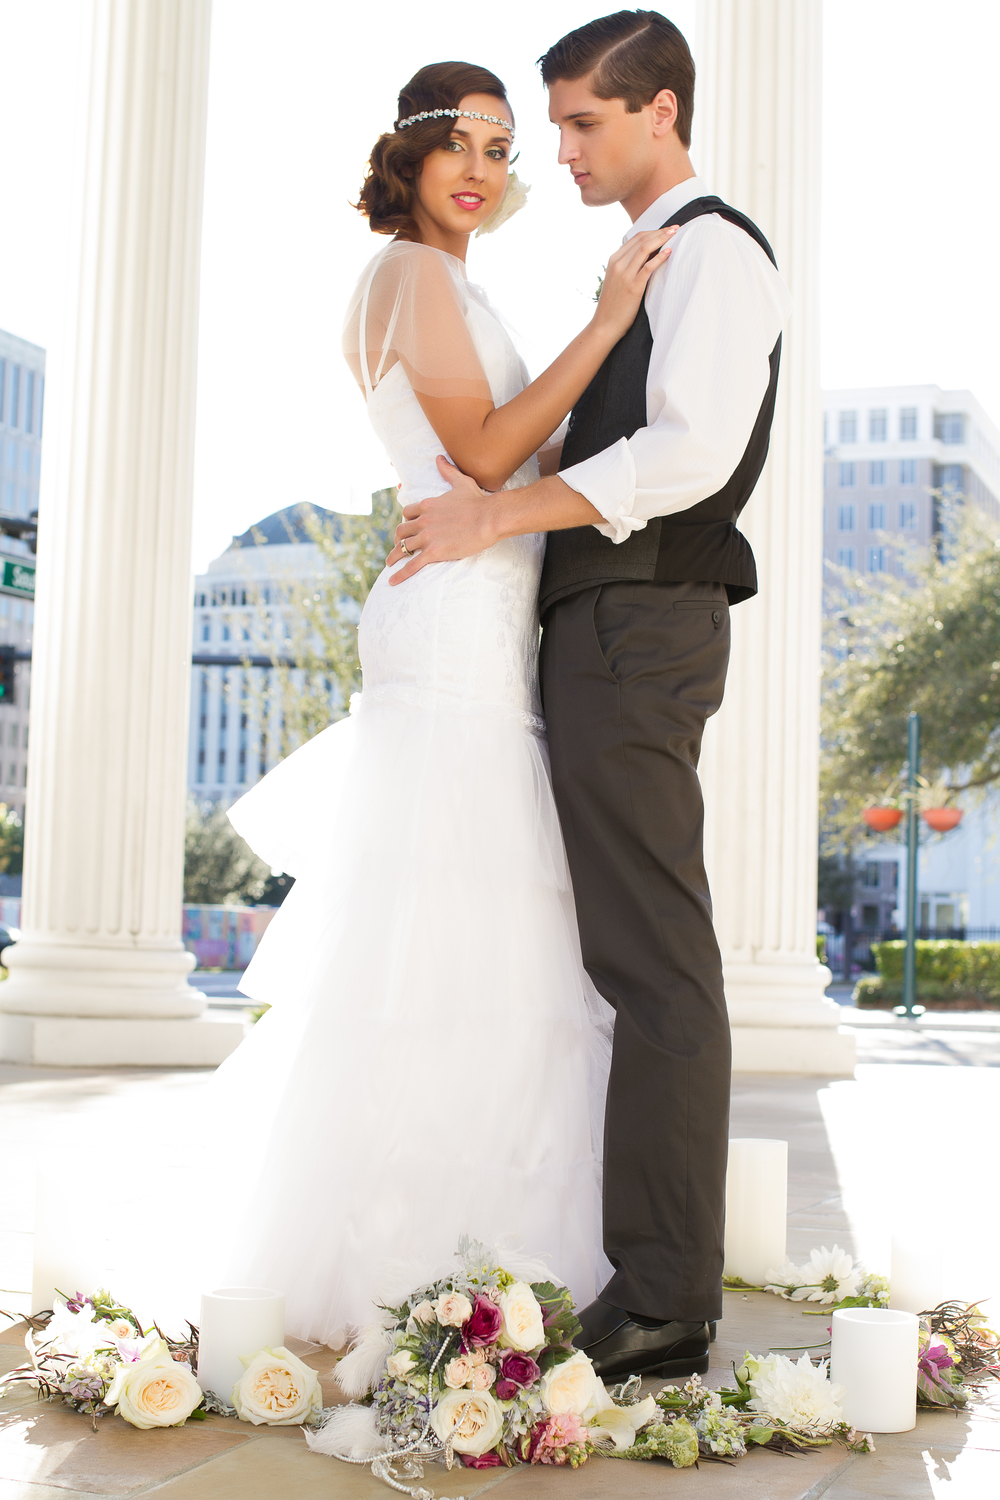 fashion_wedding_vaniaelisephotography--84.jpg